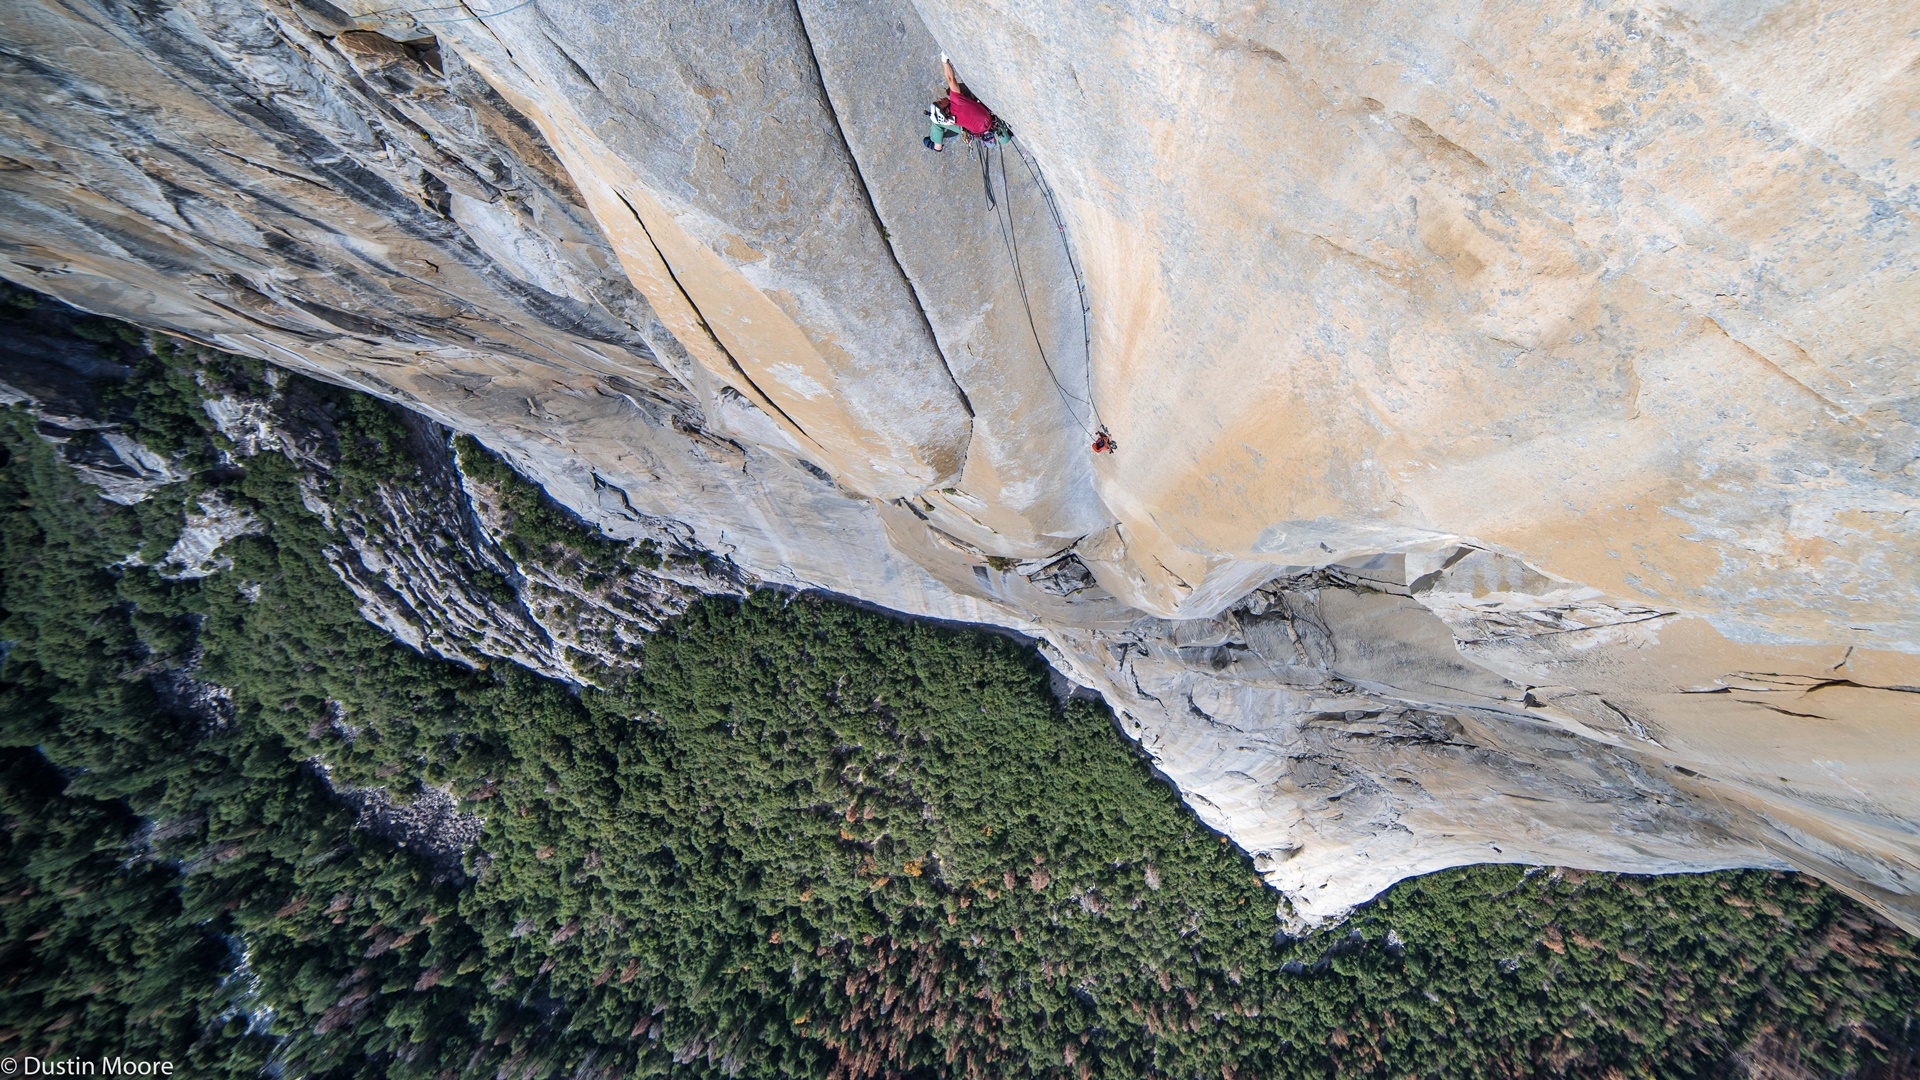 Pete Whittaker - Freerider Rope Solo